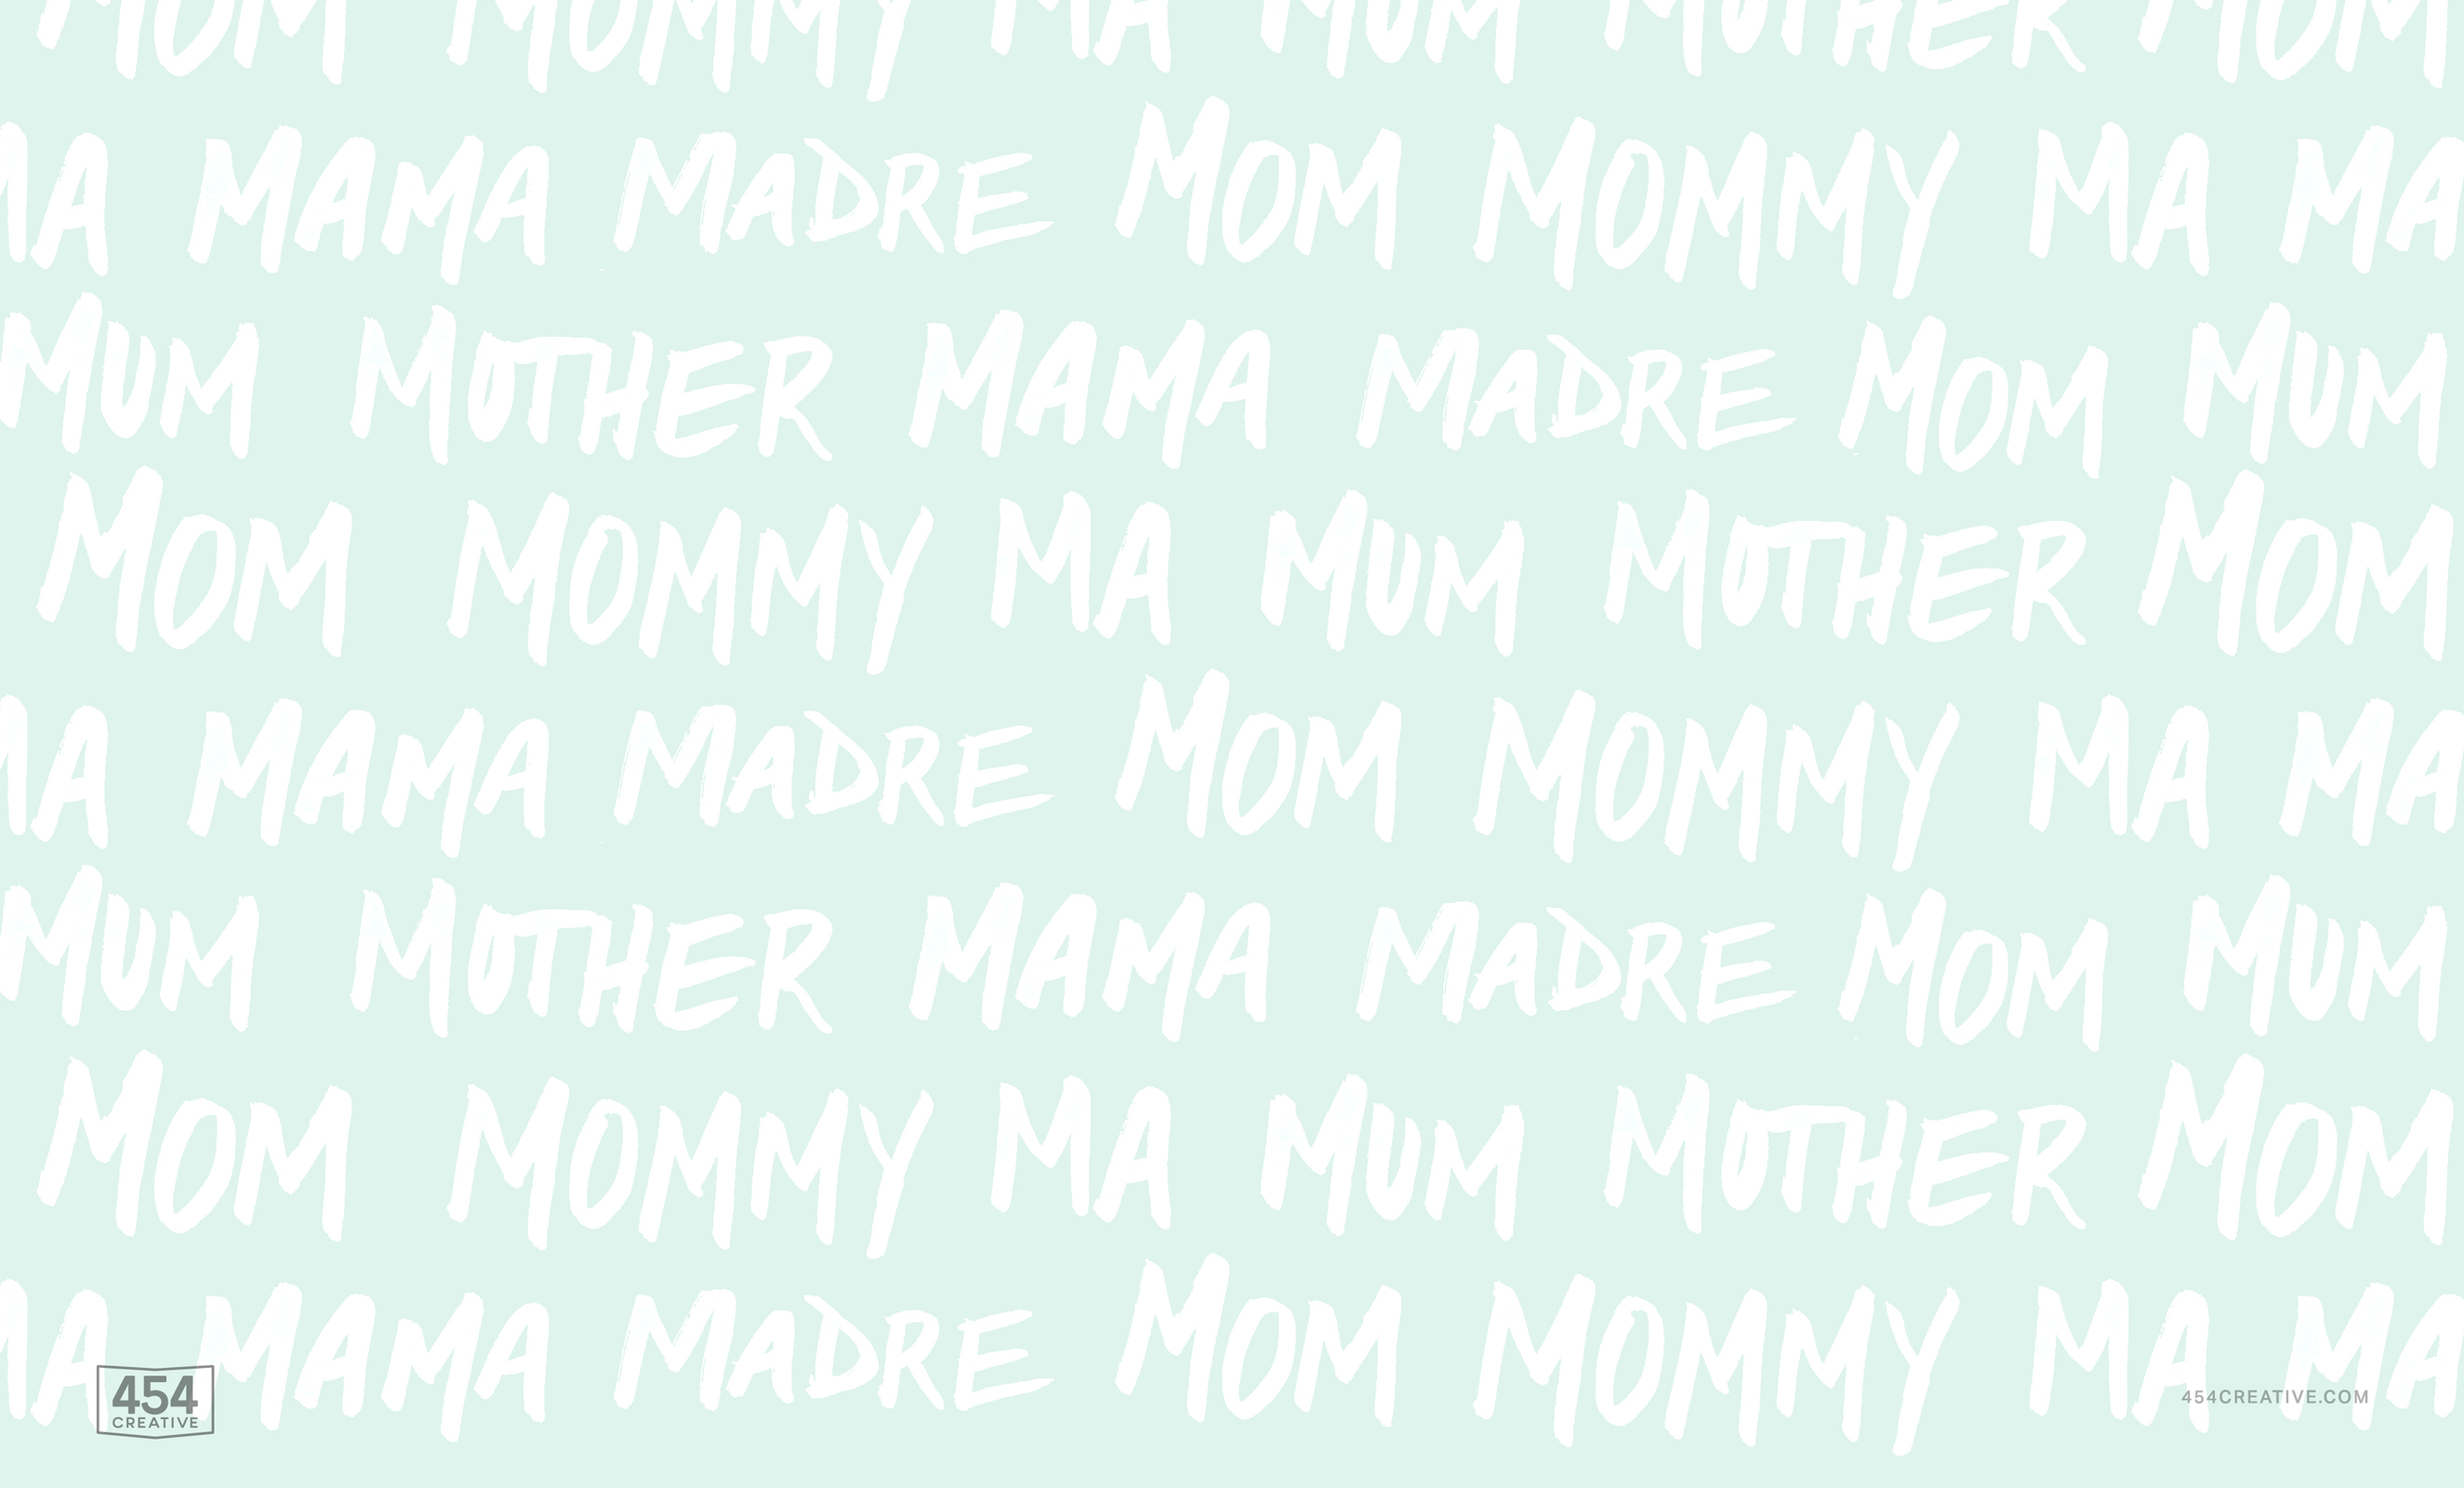 free downloadable mother's day mobile & desktop backgrounds | 454